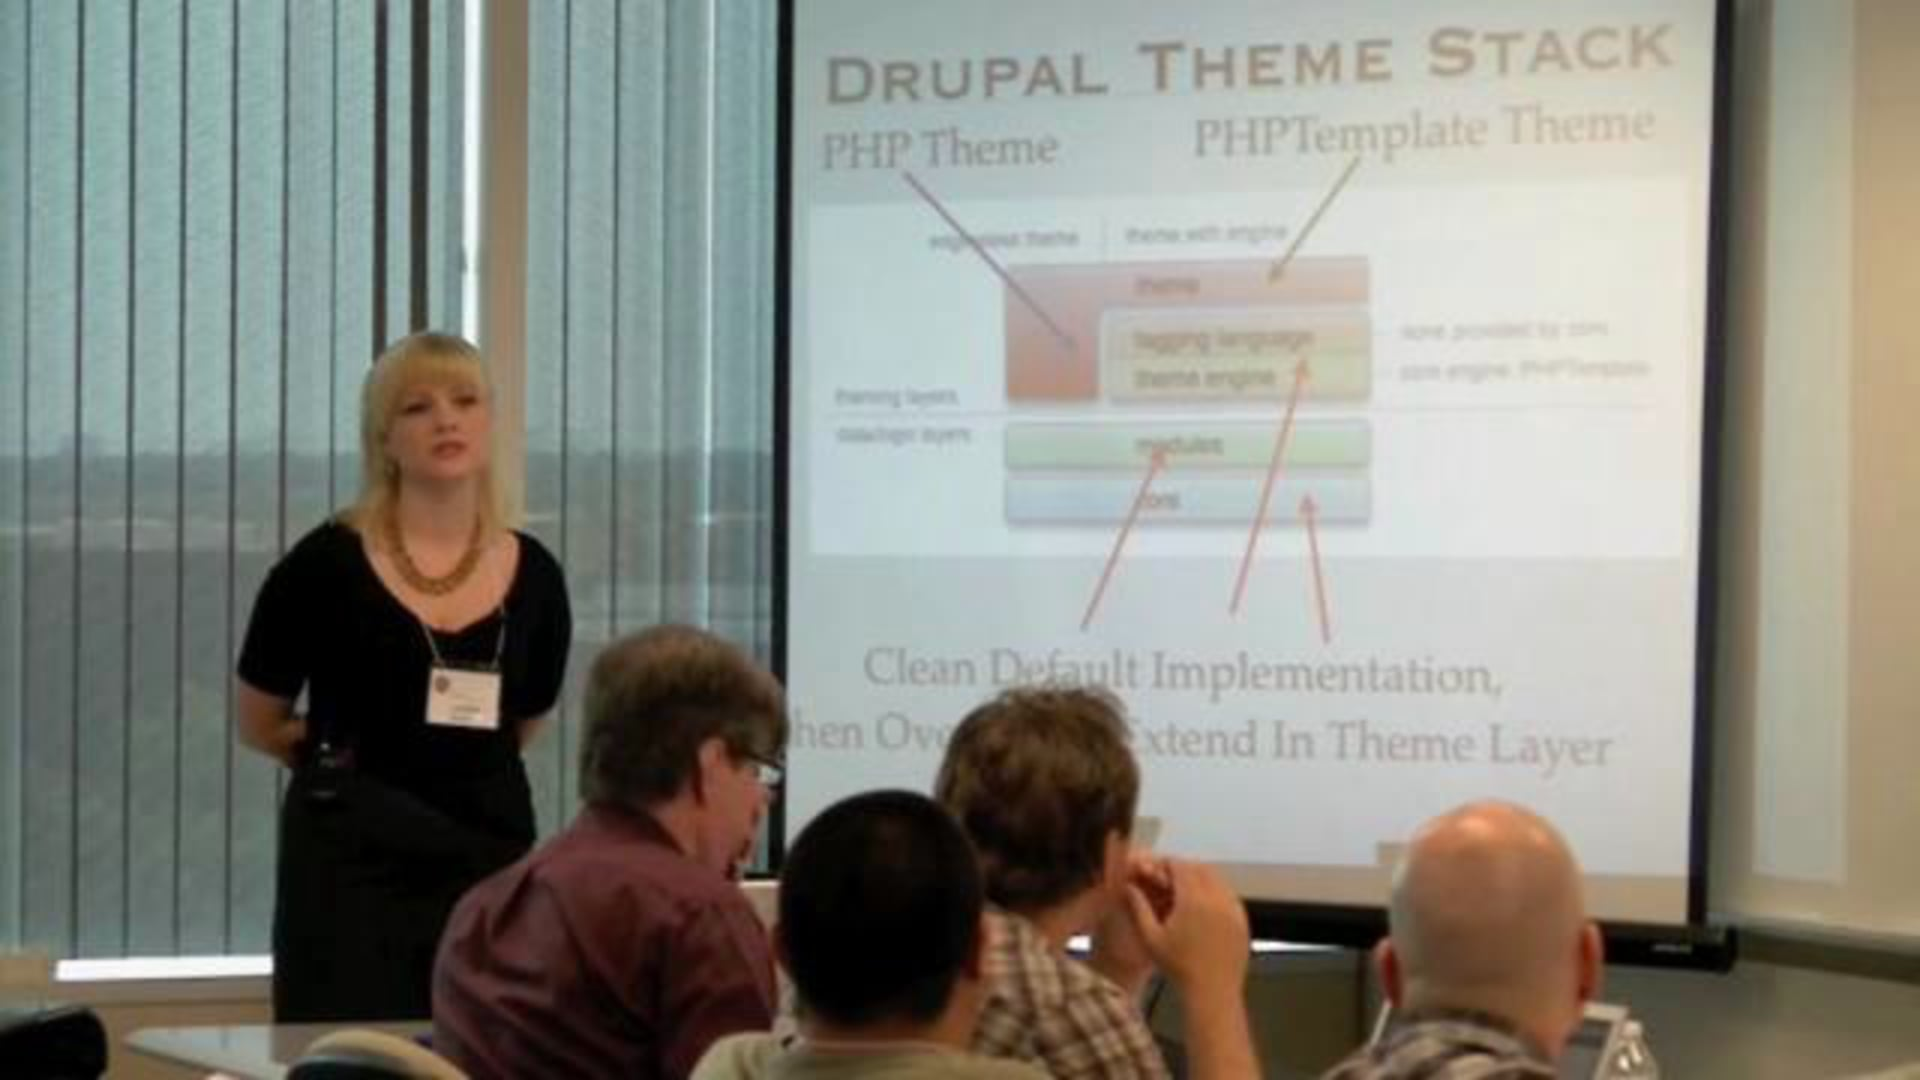 Theming From A Developer's Perspective | Lauren Roth | DrupalCamp Dallas 2009